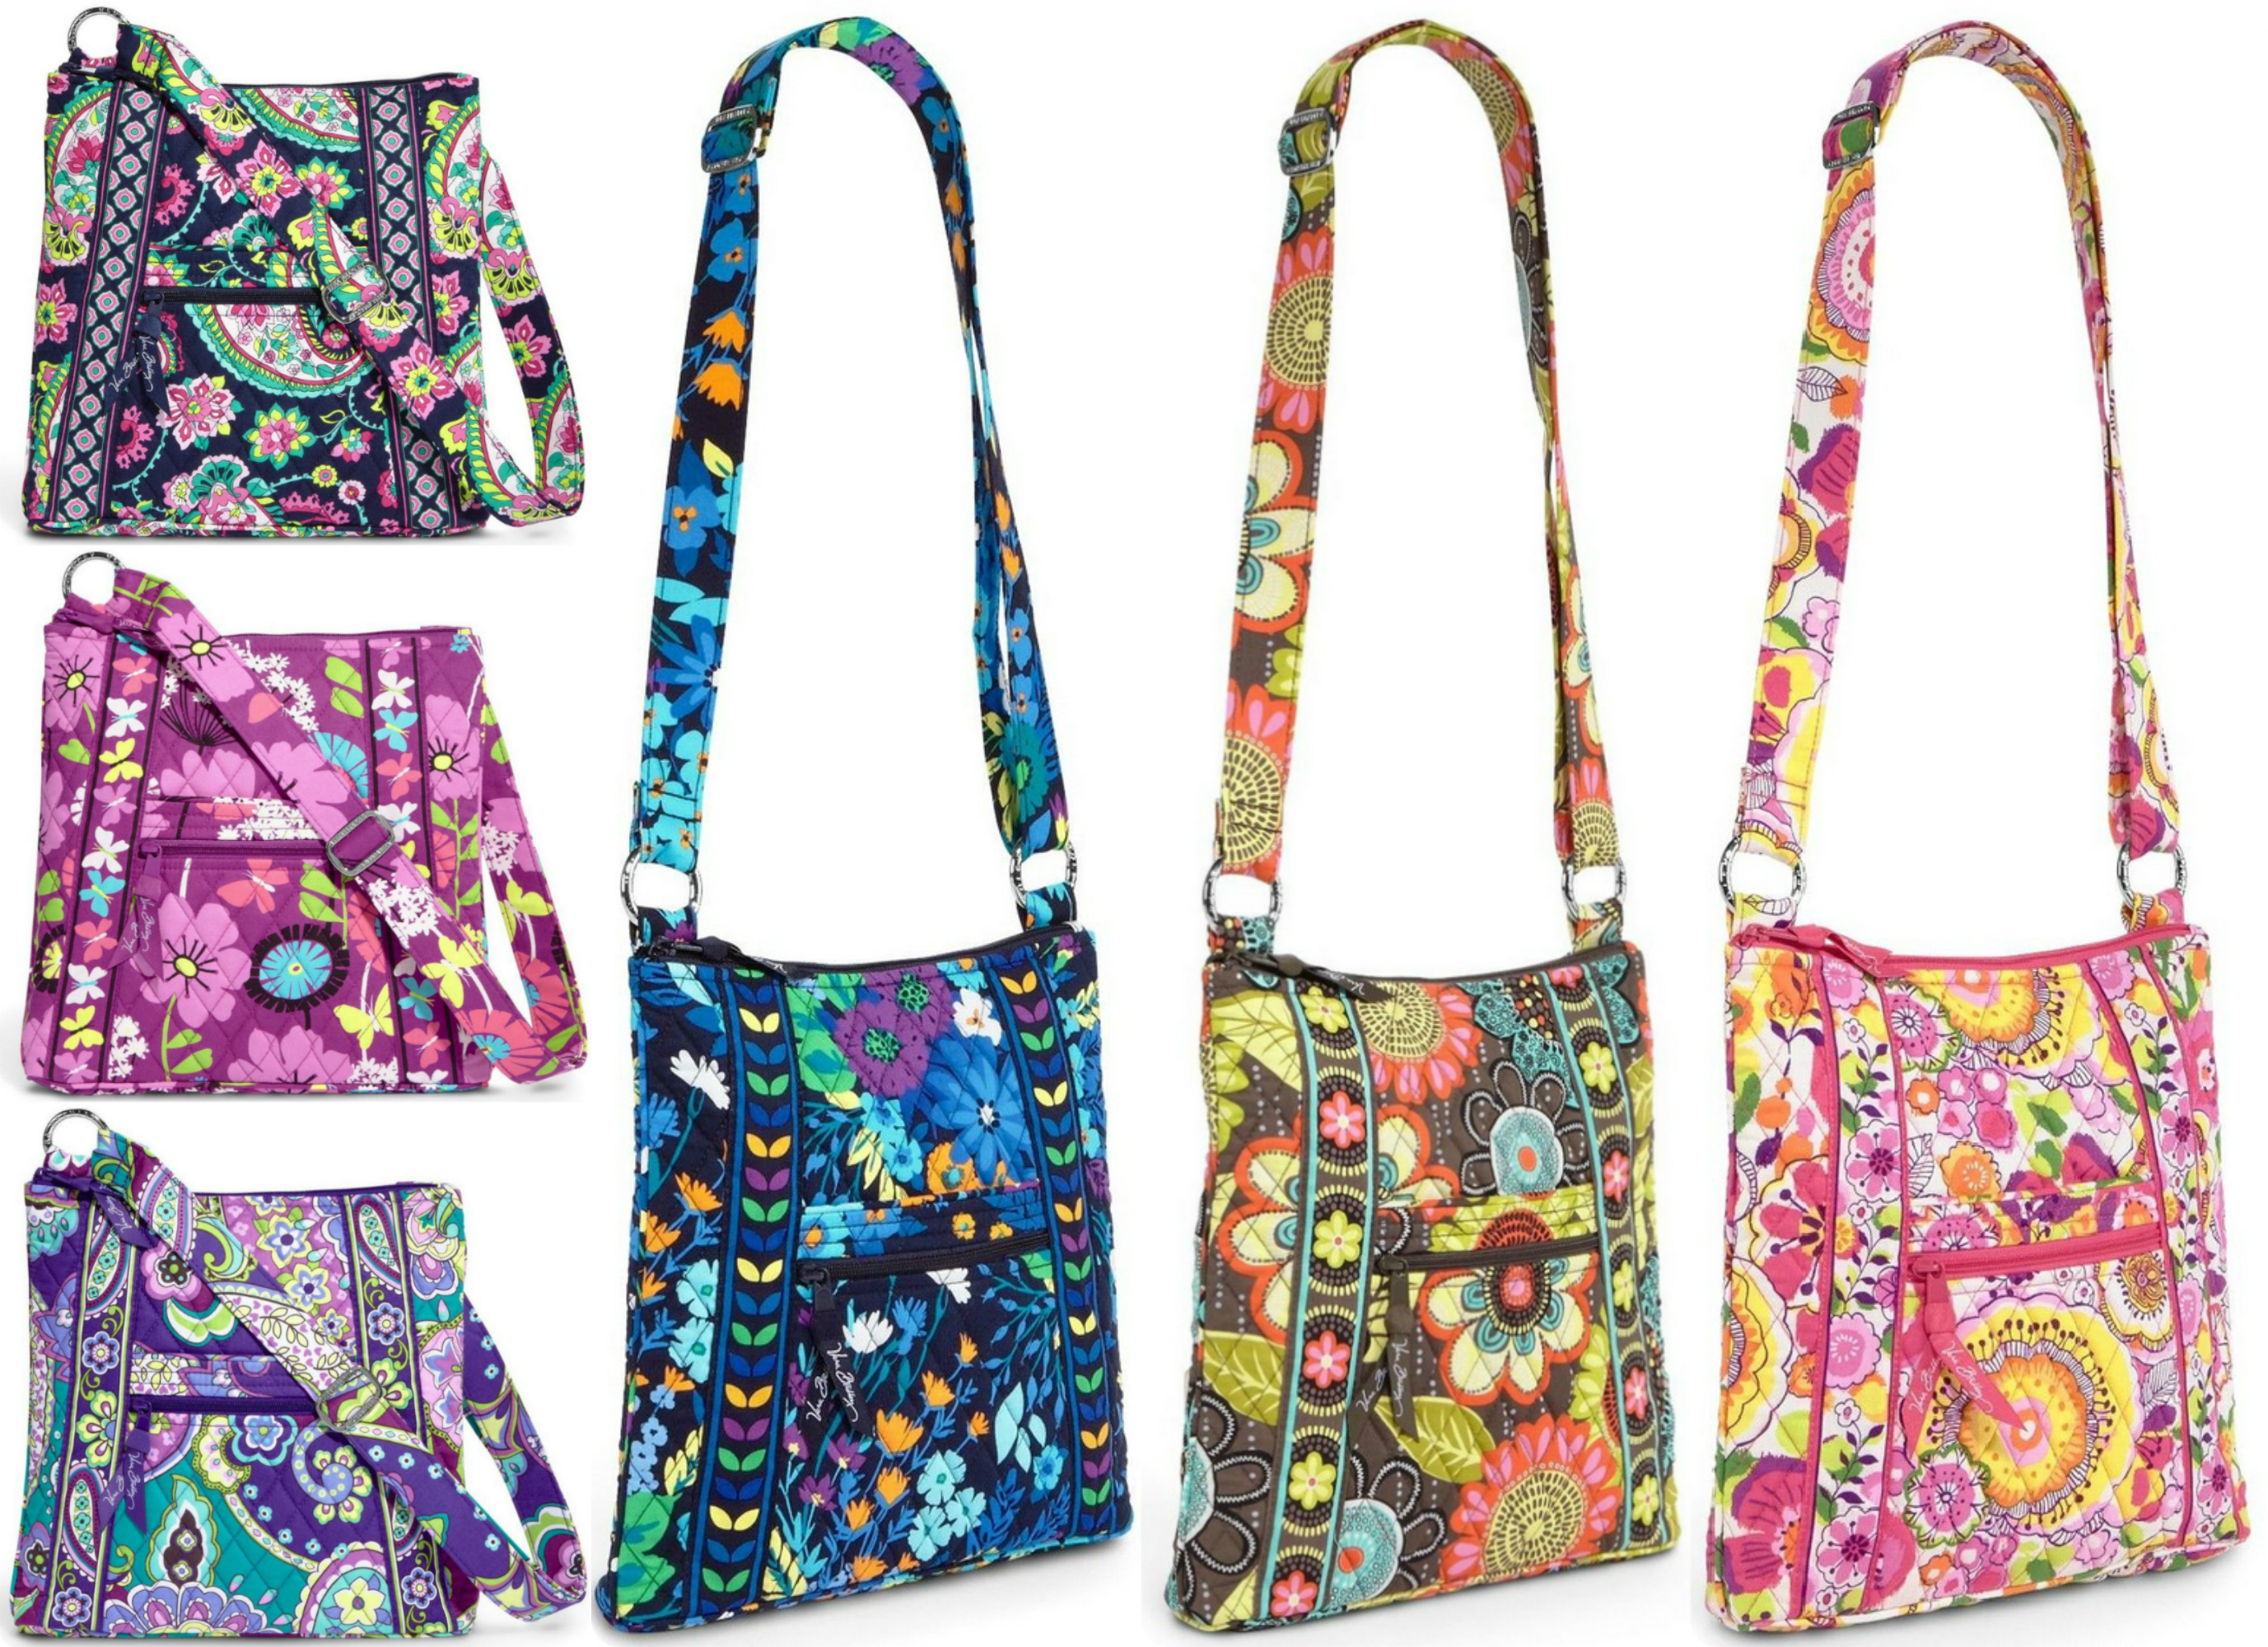 ebc79567ed Vera Bradley Hipster Crossbody Purse ONLY  19.99 Shipped (Reg.  60) –  Available in 15 Different Styles